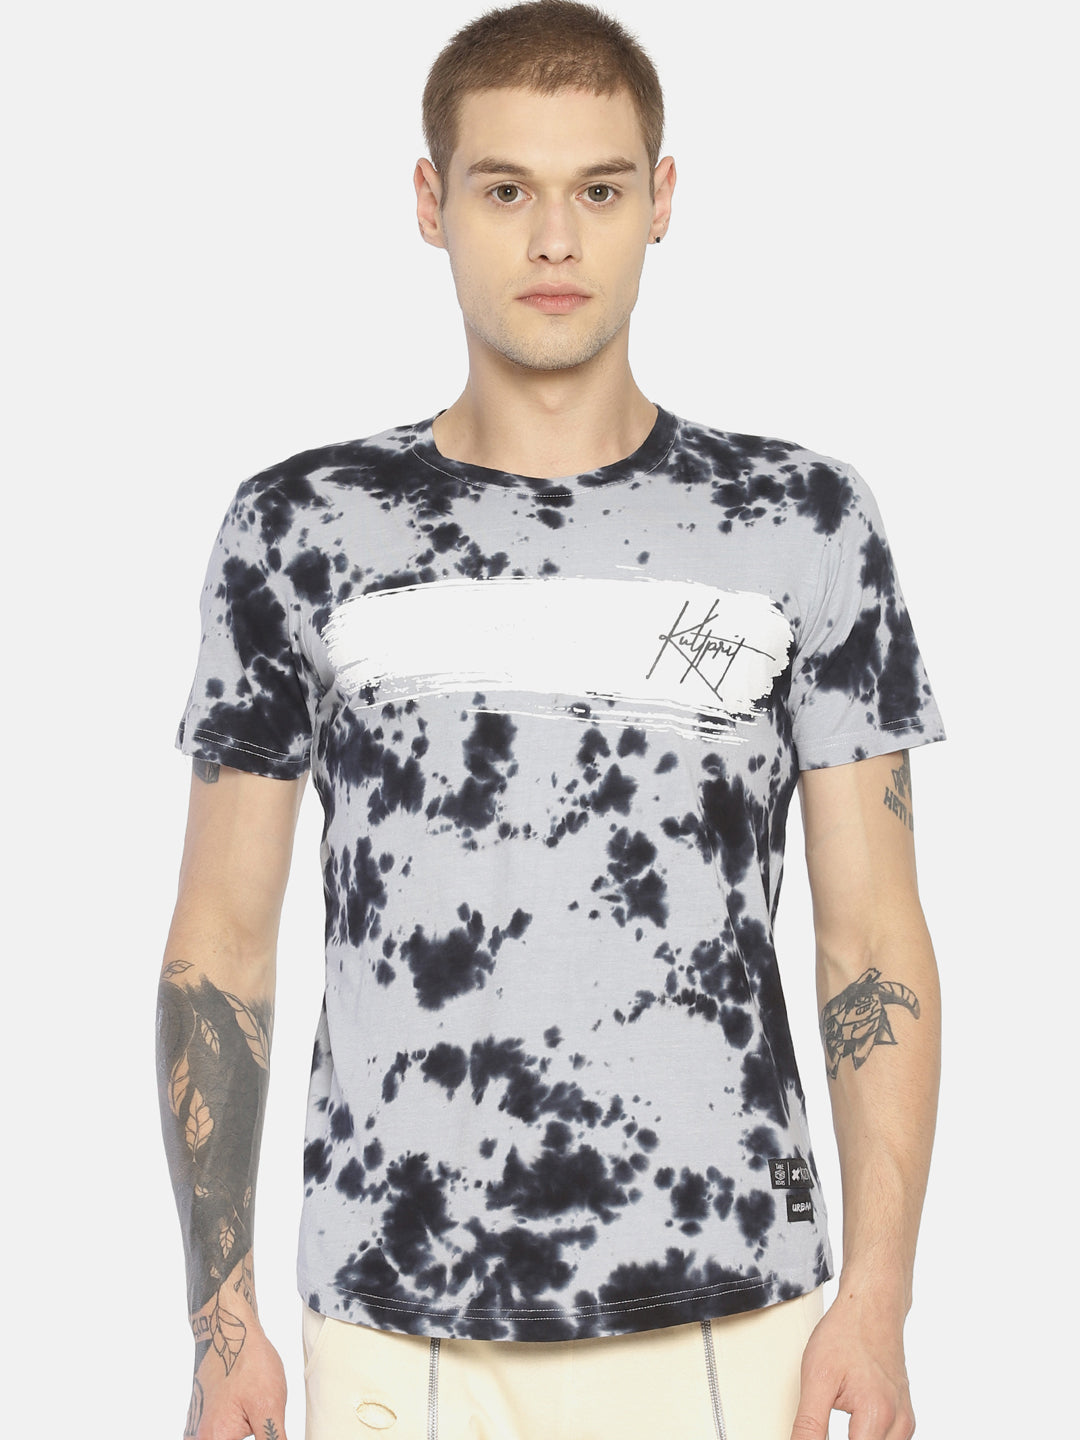 Round Neck Short Sleeve Tshirt With All over Printed